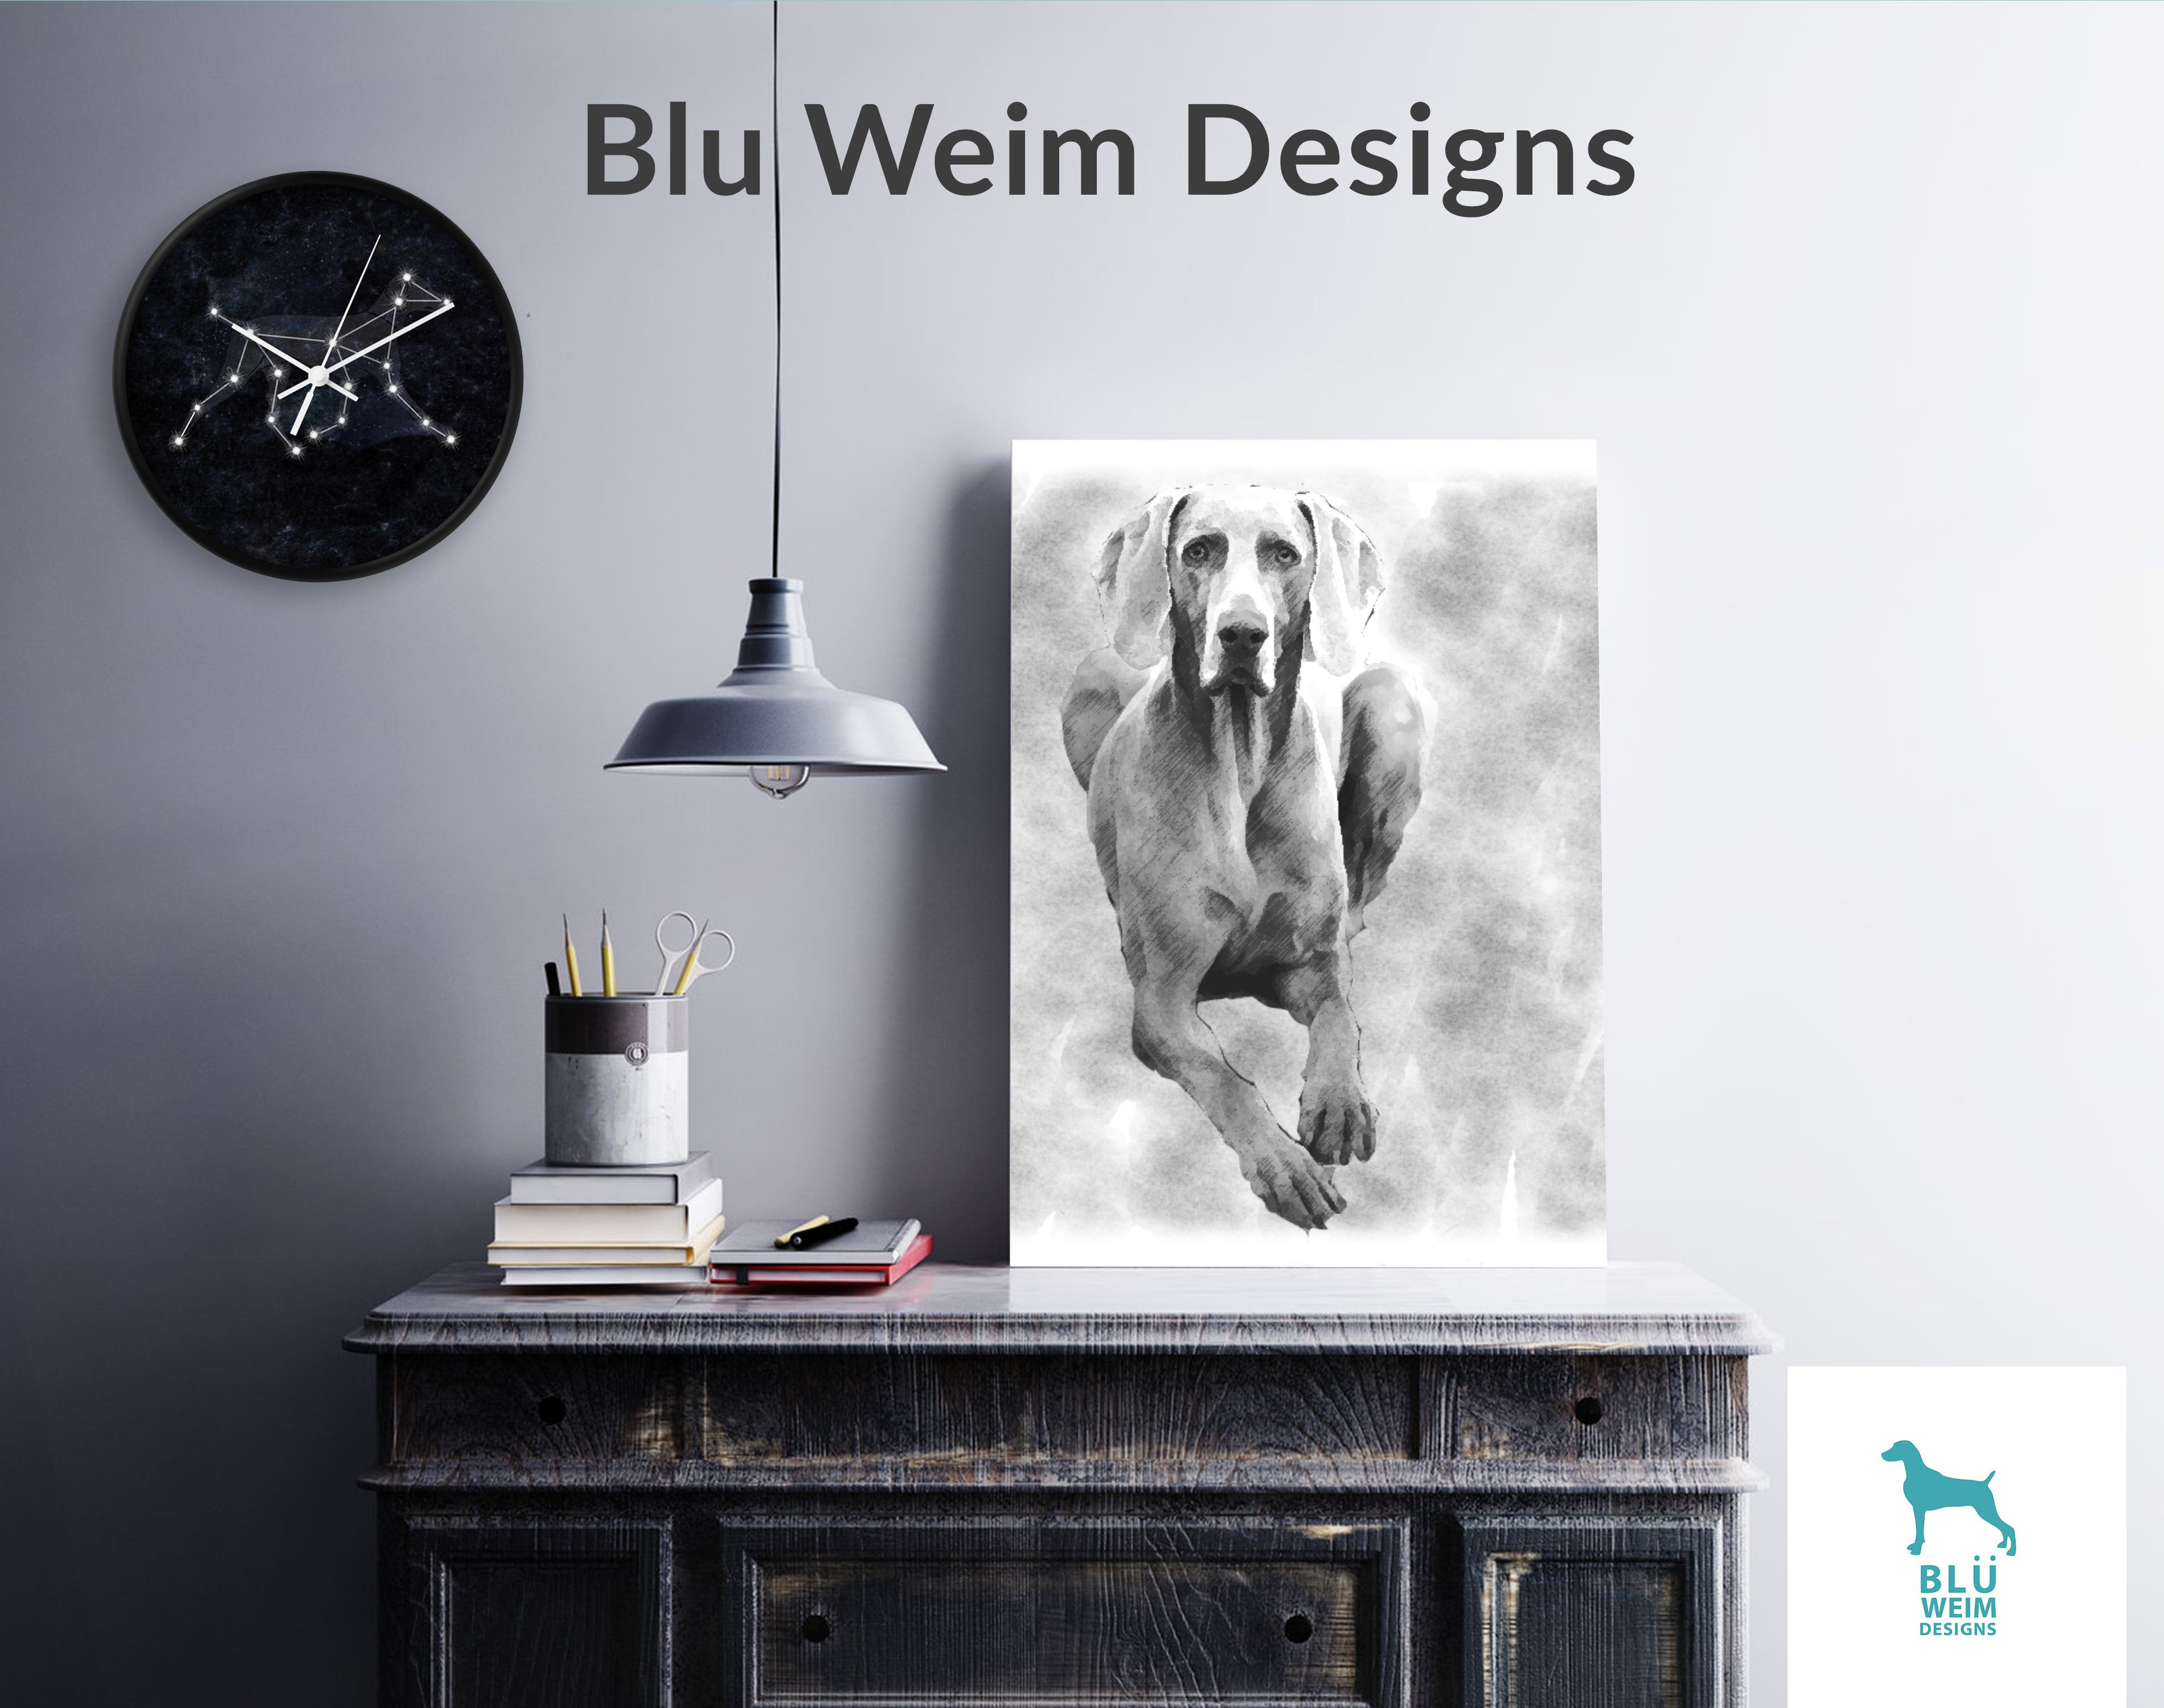 Pin by Blü Weim Designs on Gallery wall Design, Gallery